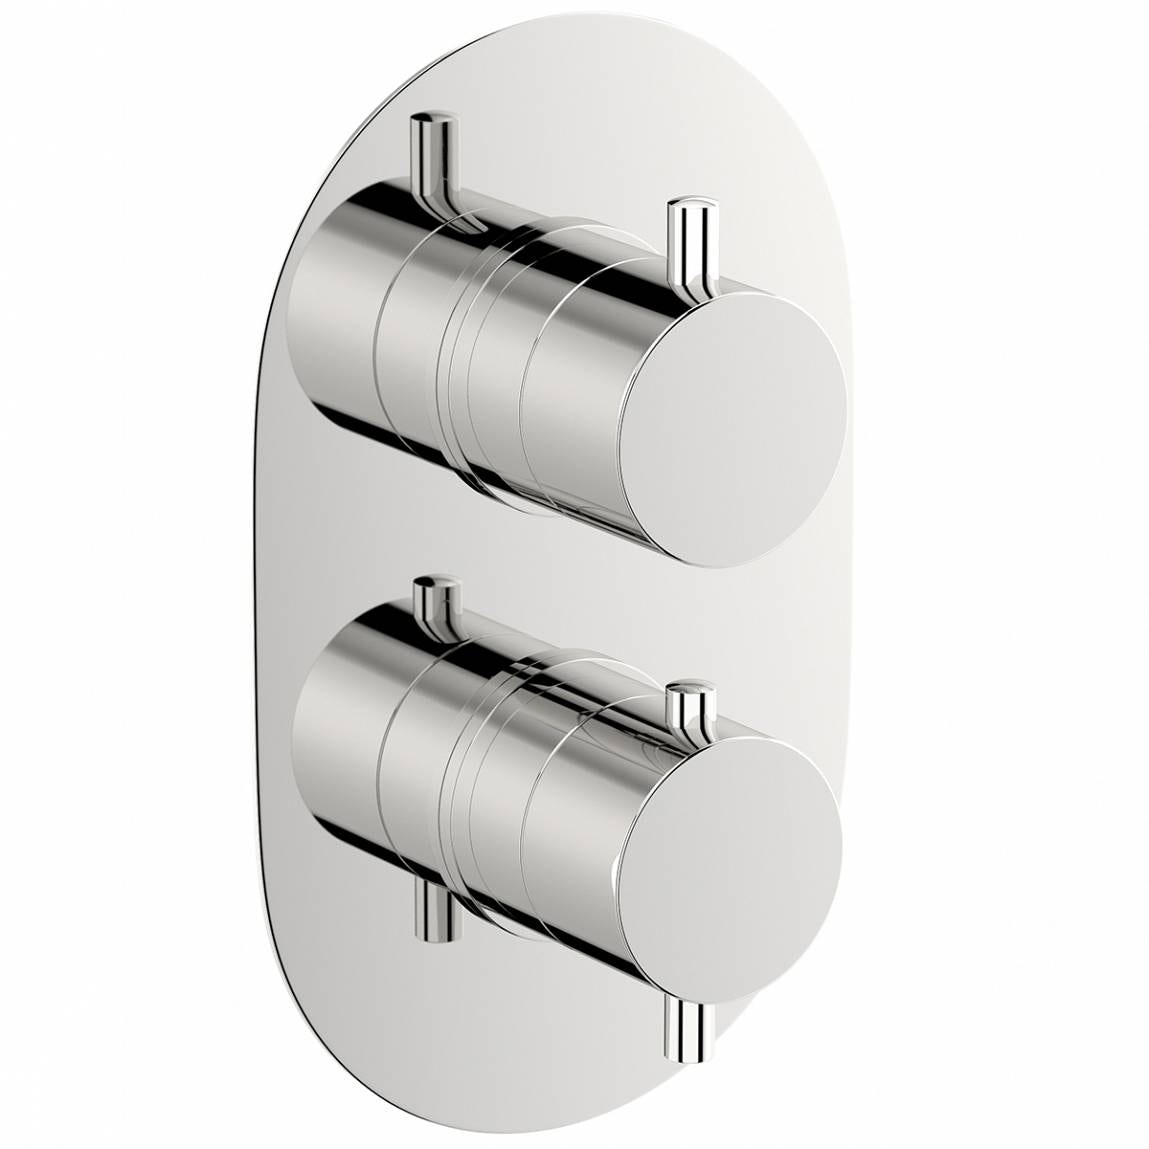 Mode Matrix oval twin thermostatic shower valve with diverter